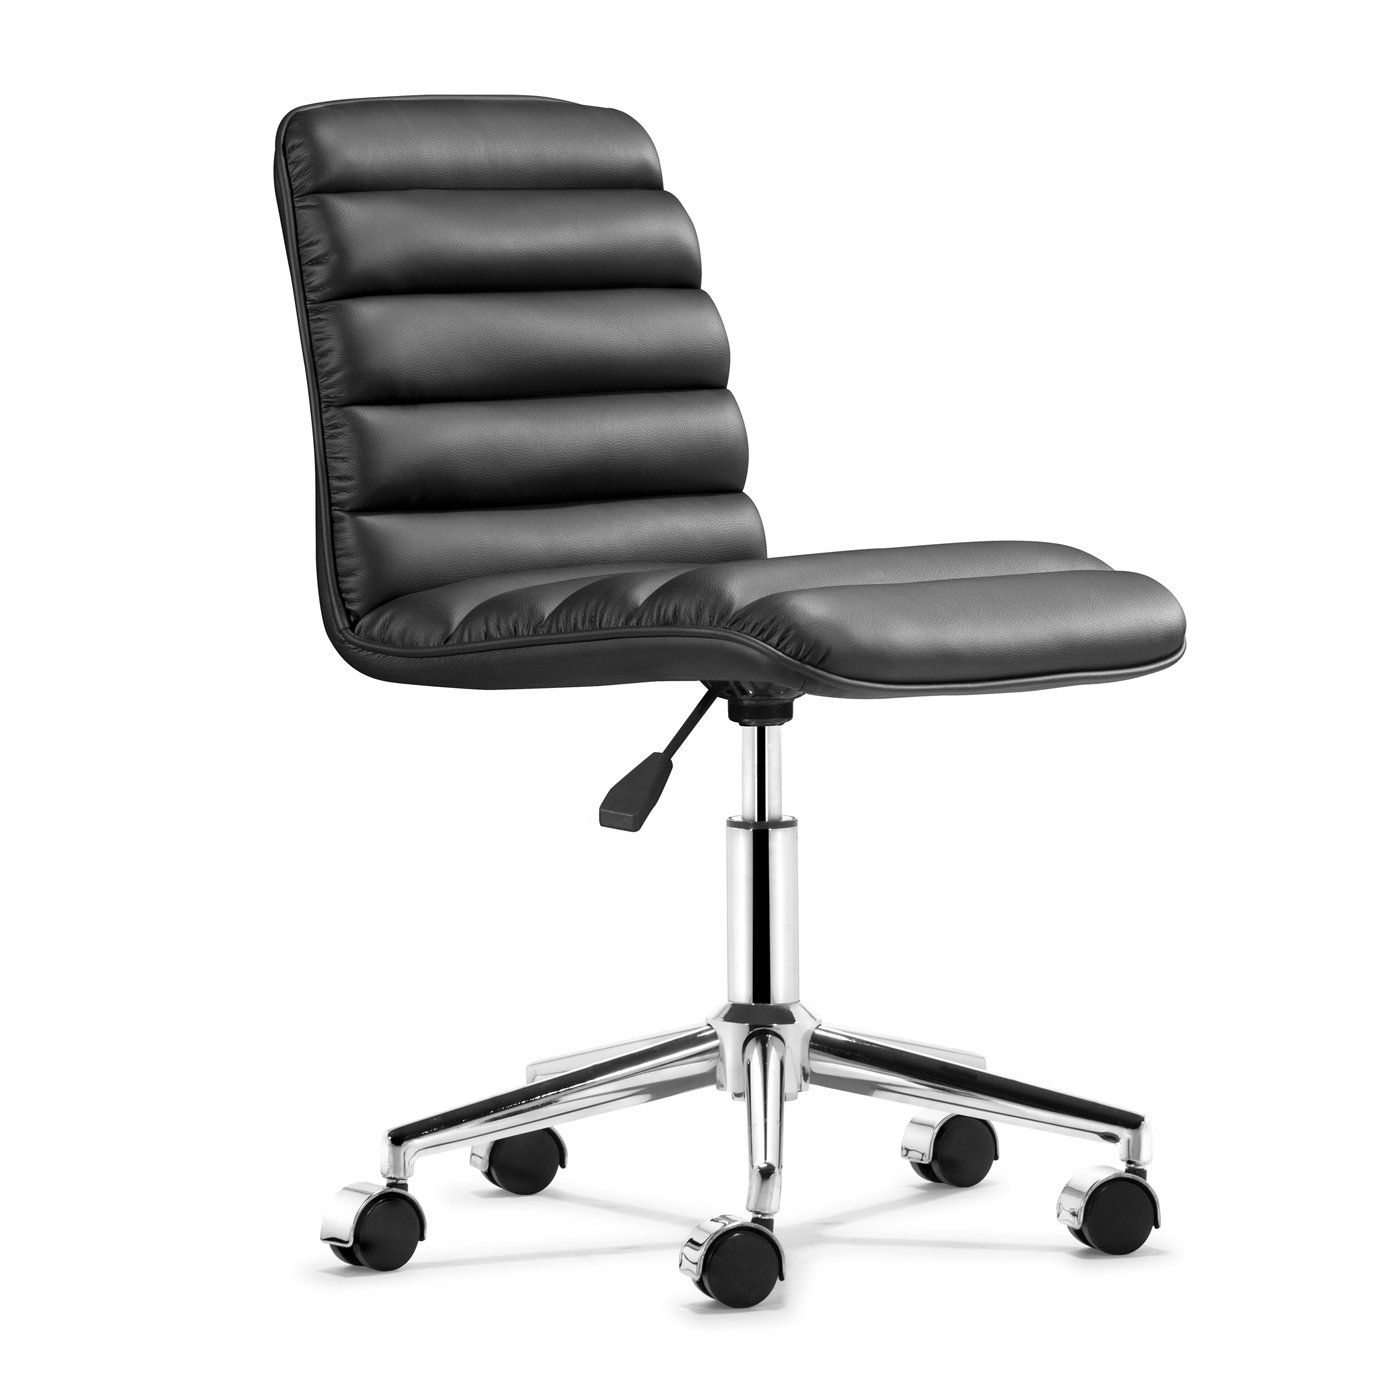 The Cushion Plush Armless Office Chair In Breathable Black Will